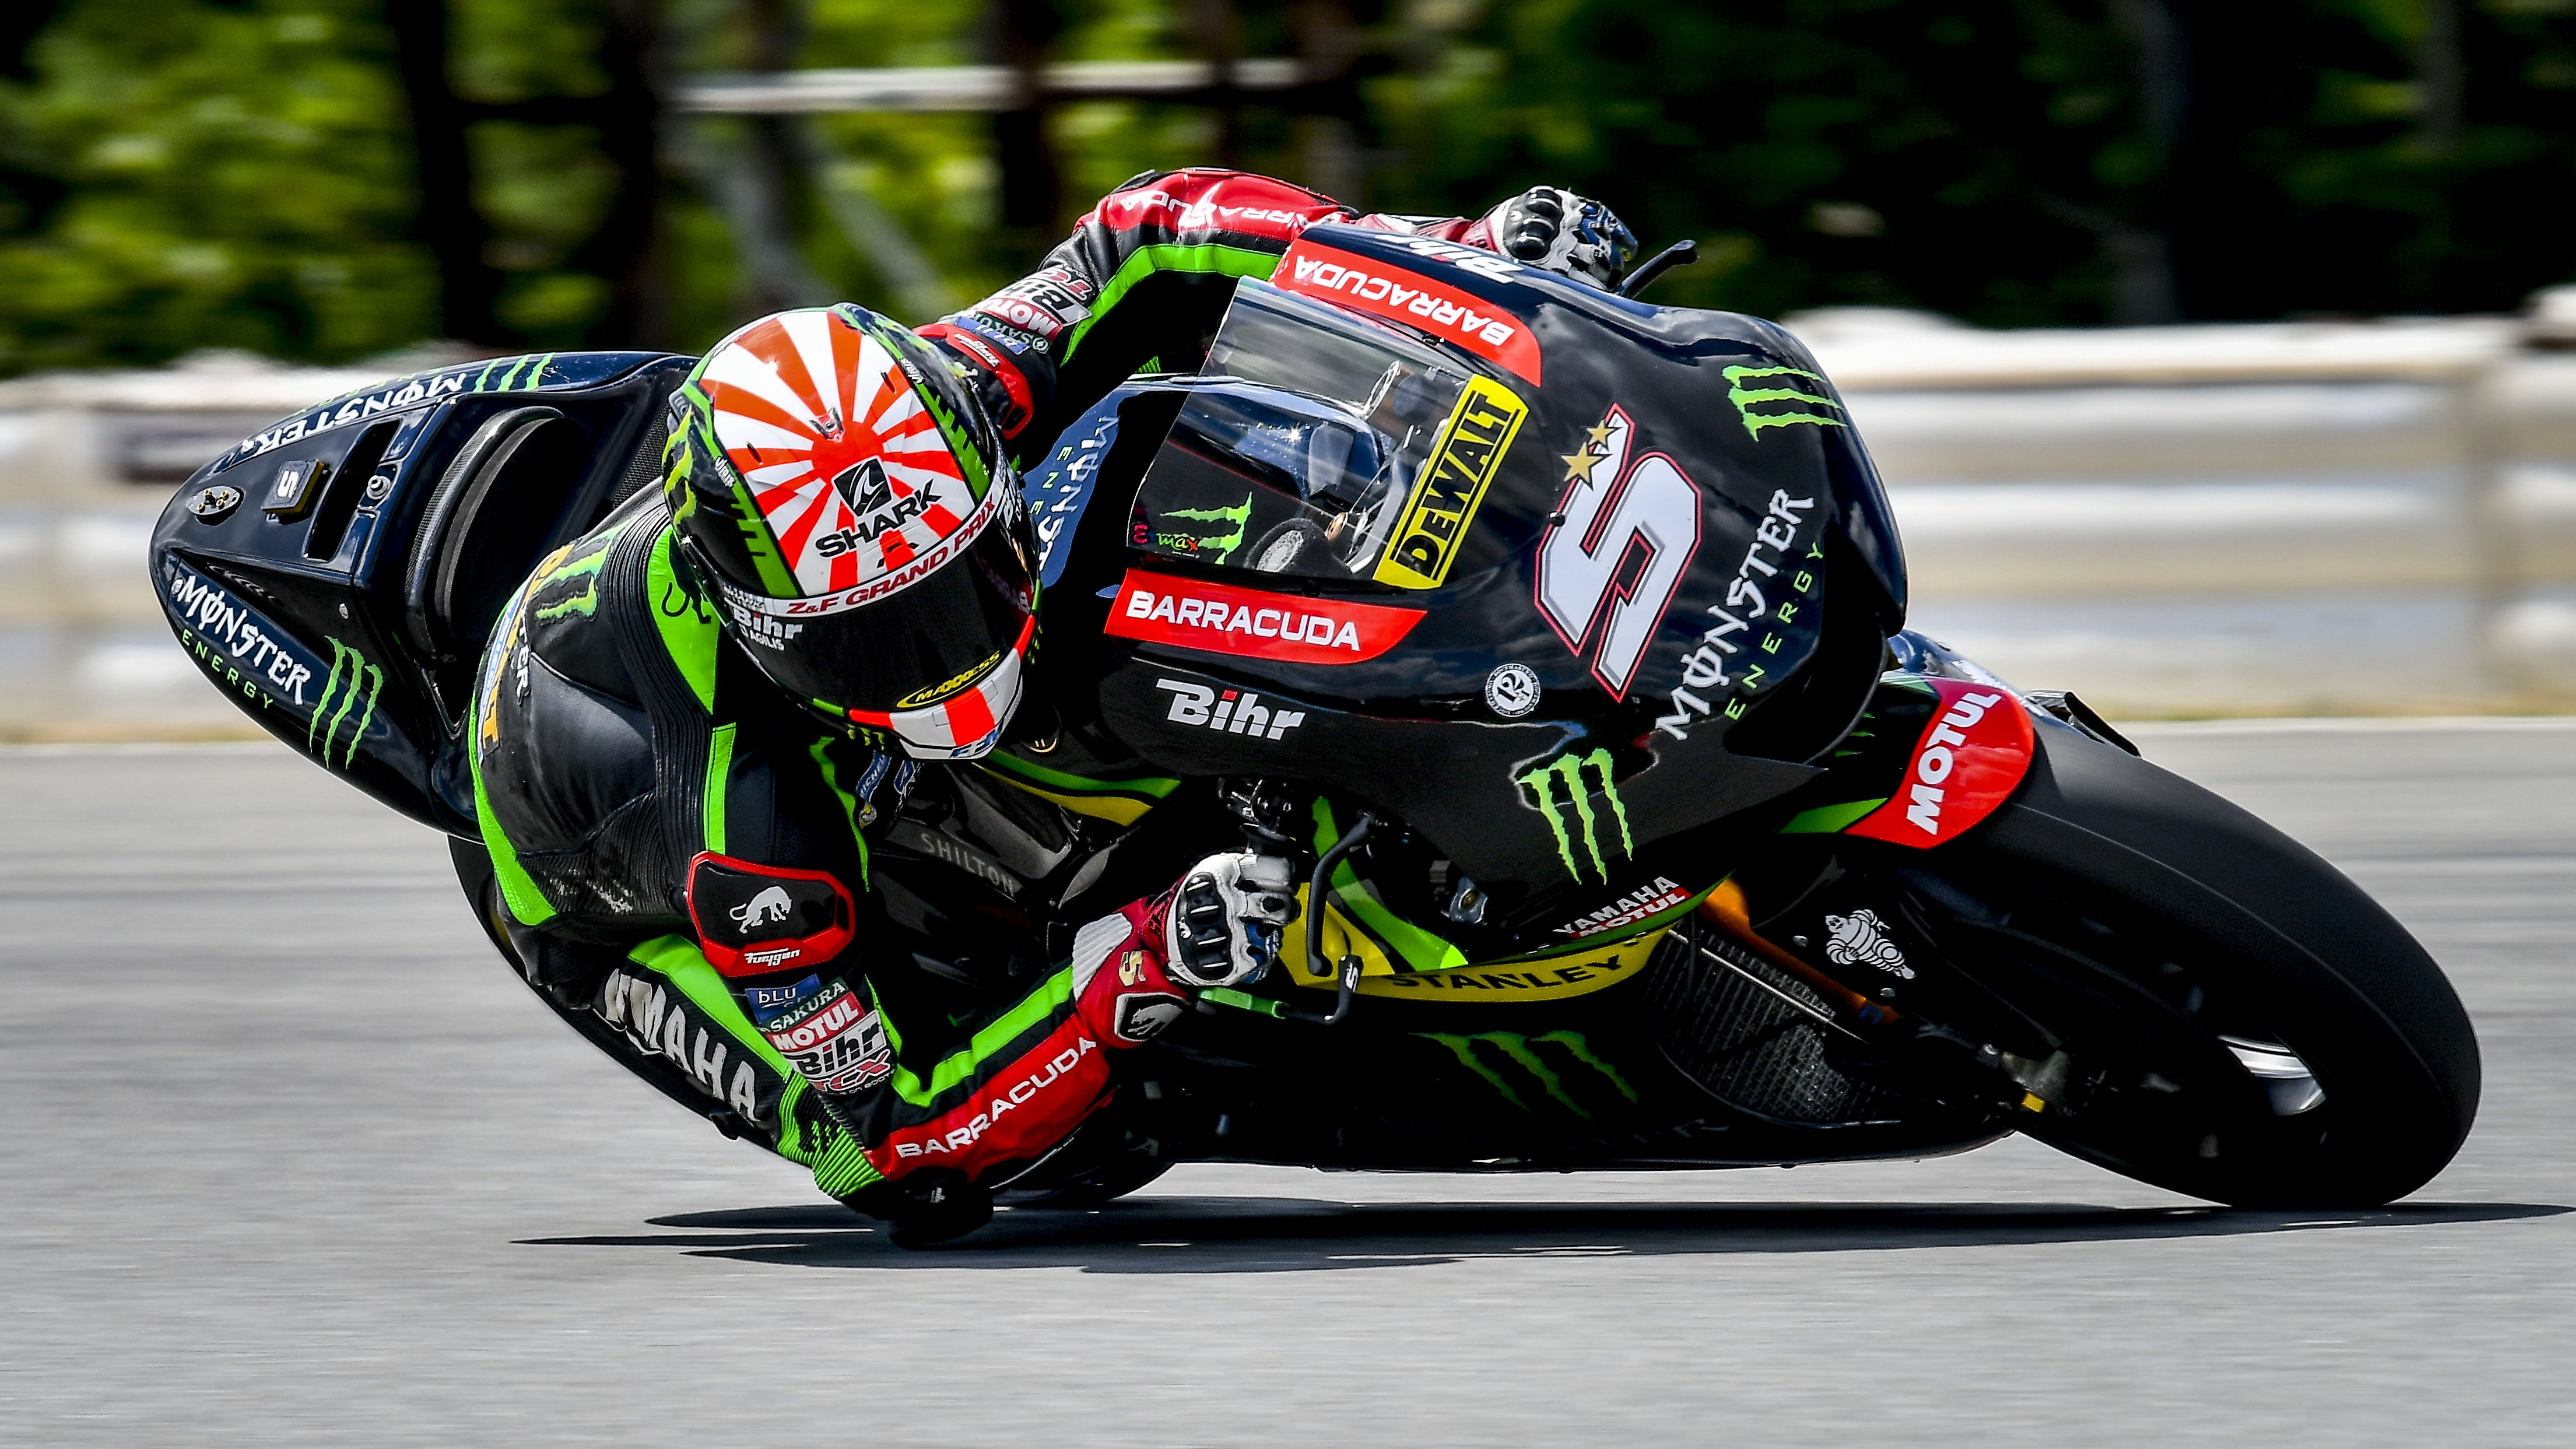 Zarco and Folger fully charged and confident of strong results at Austrian GP